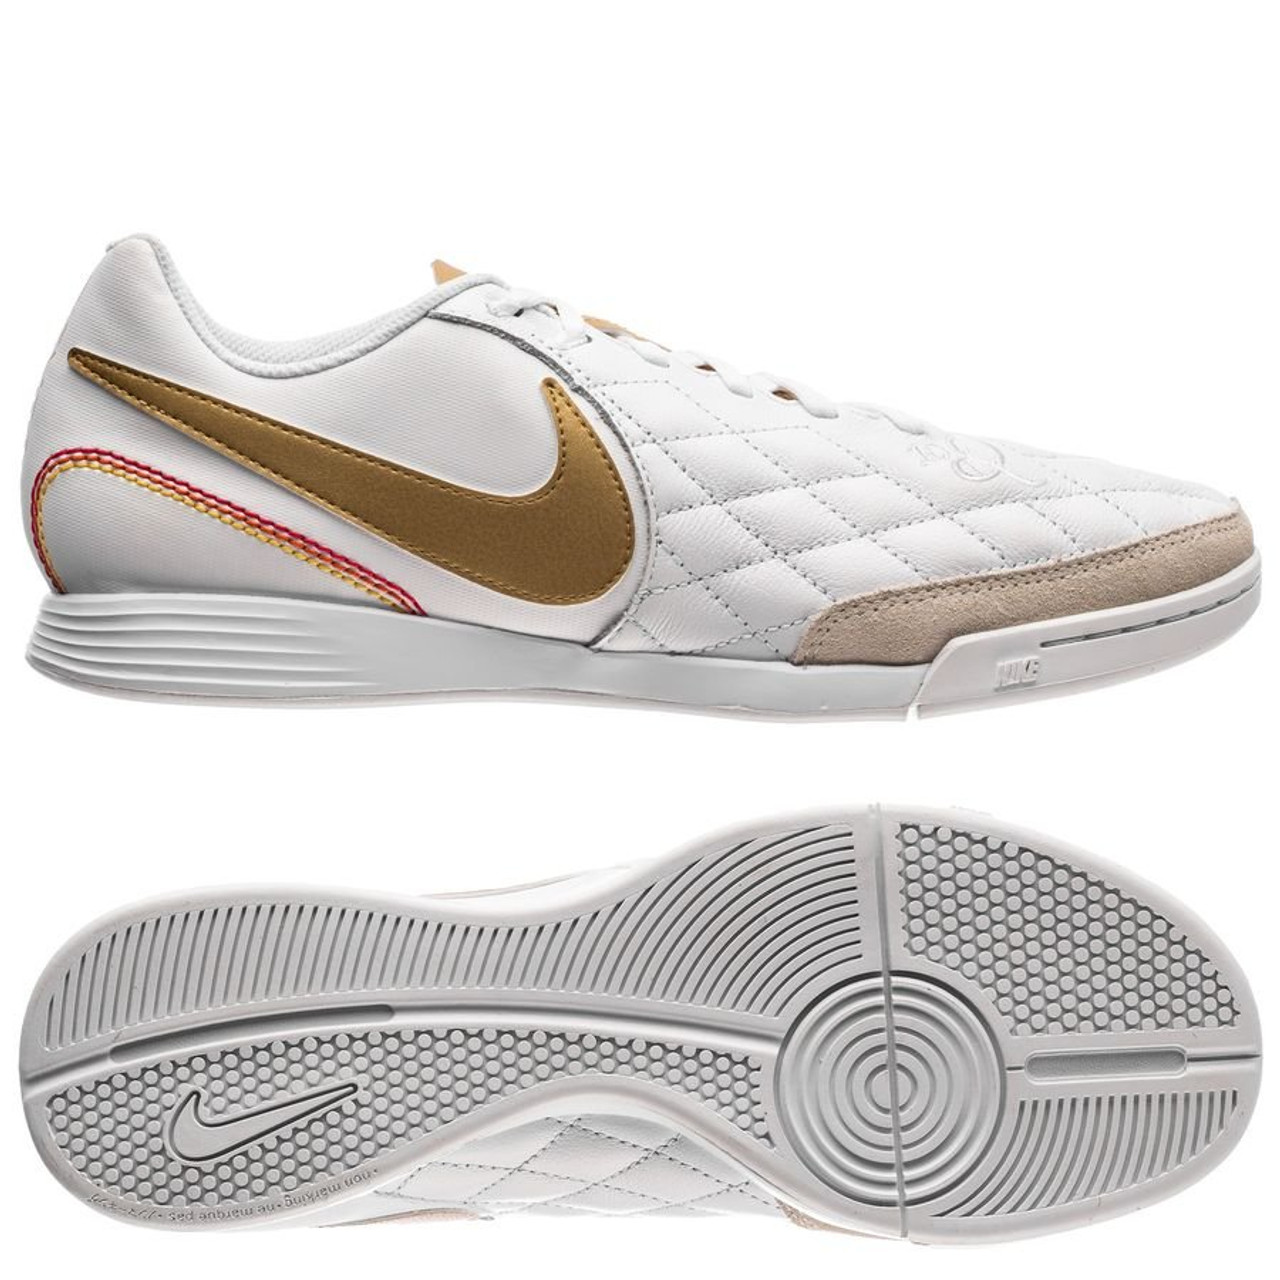 super popular 4fe97 ee7be NIKE LEGEND 7 ACADEMY 10R IC White/gold